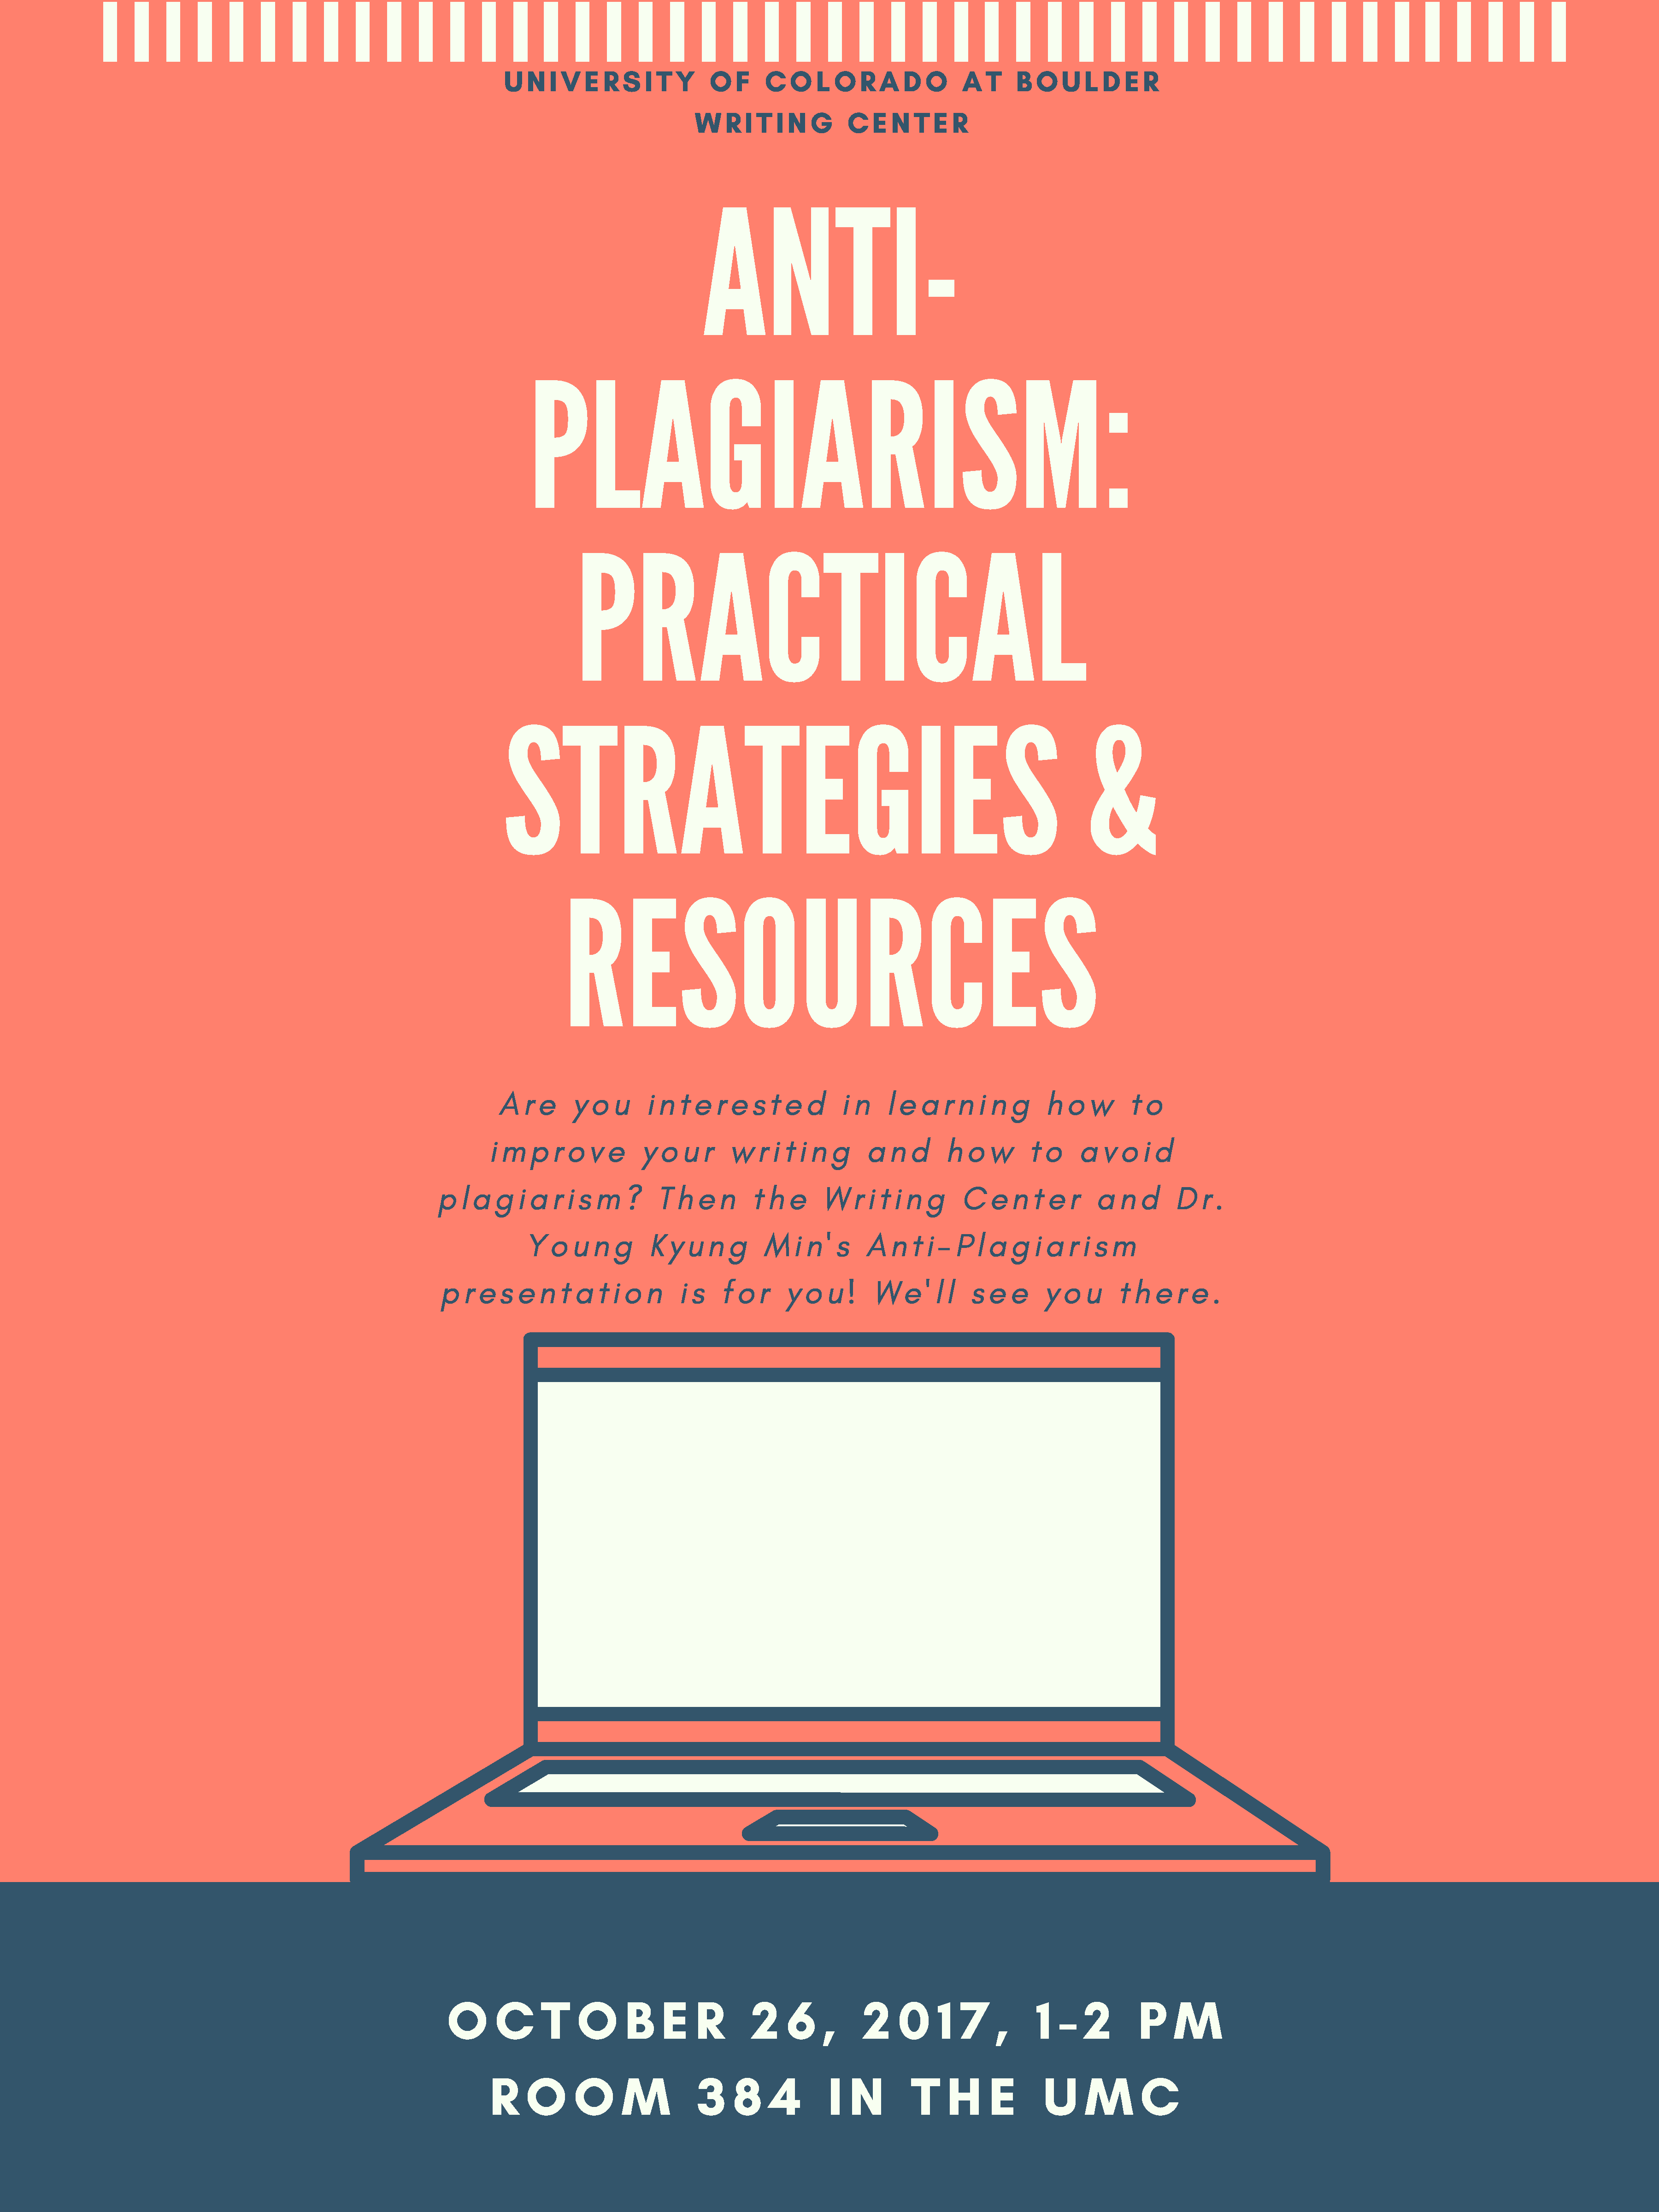 Anti-Plagiarism: Practical Strategies & Resources